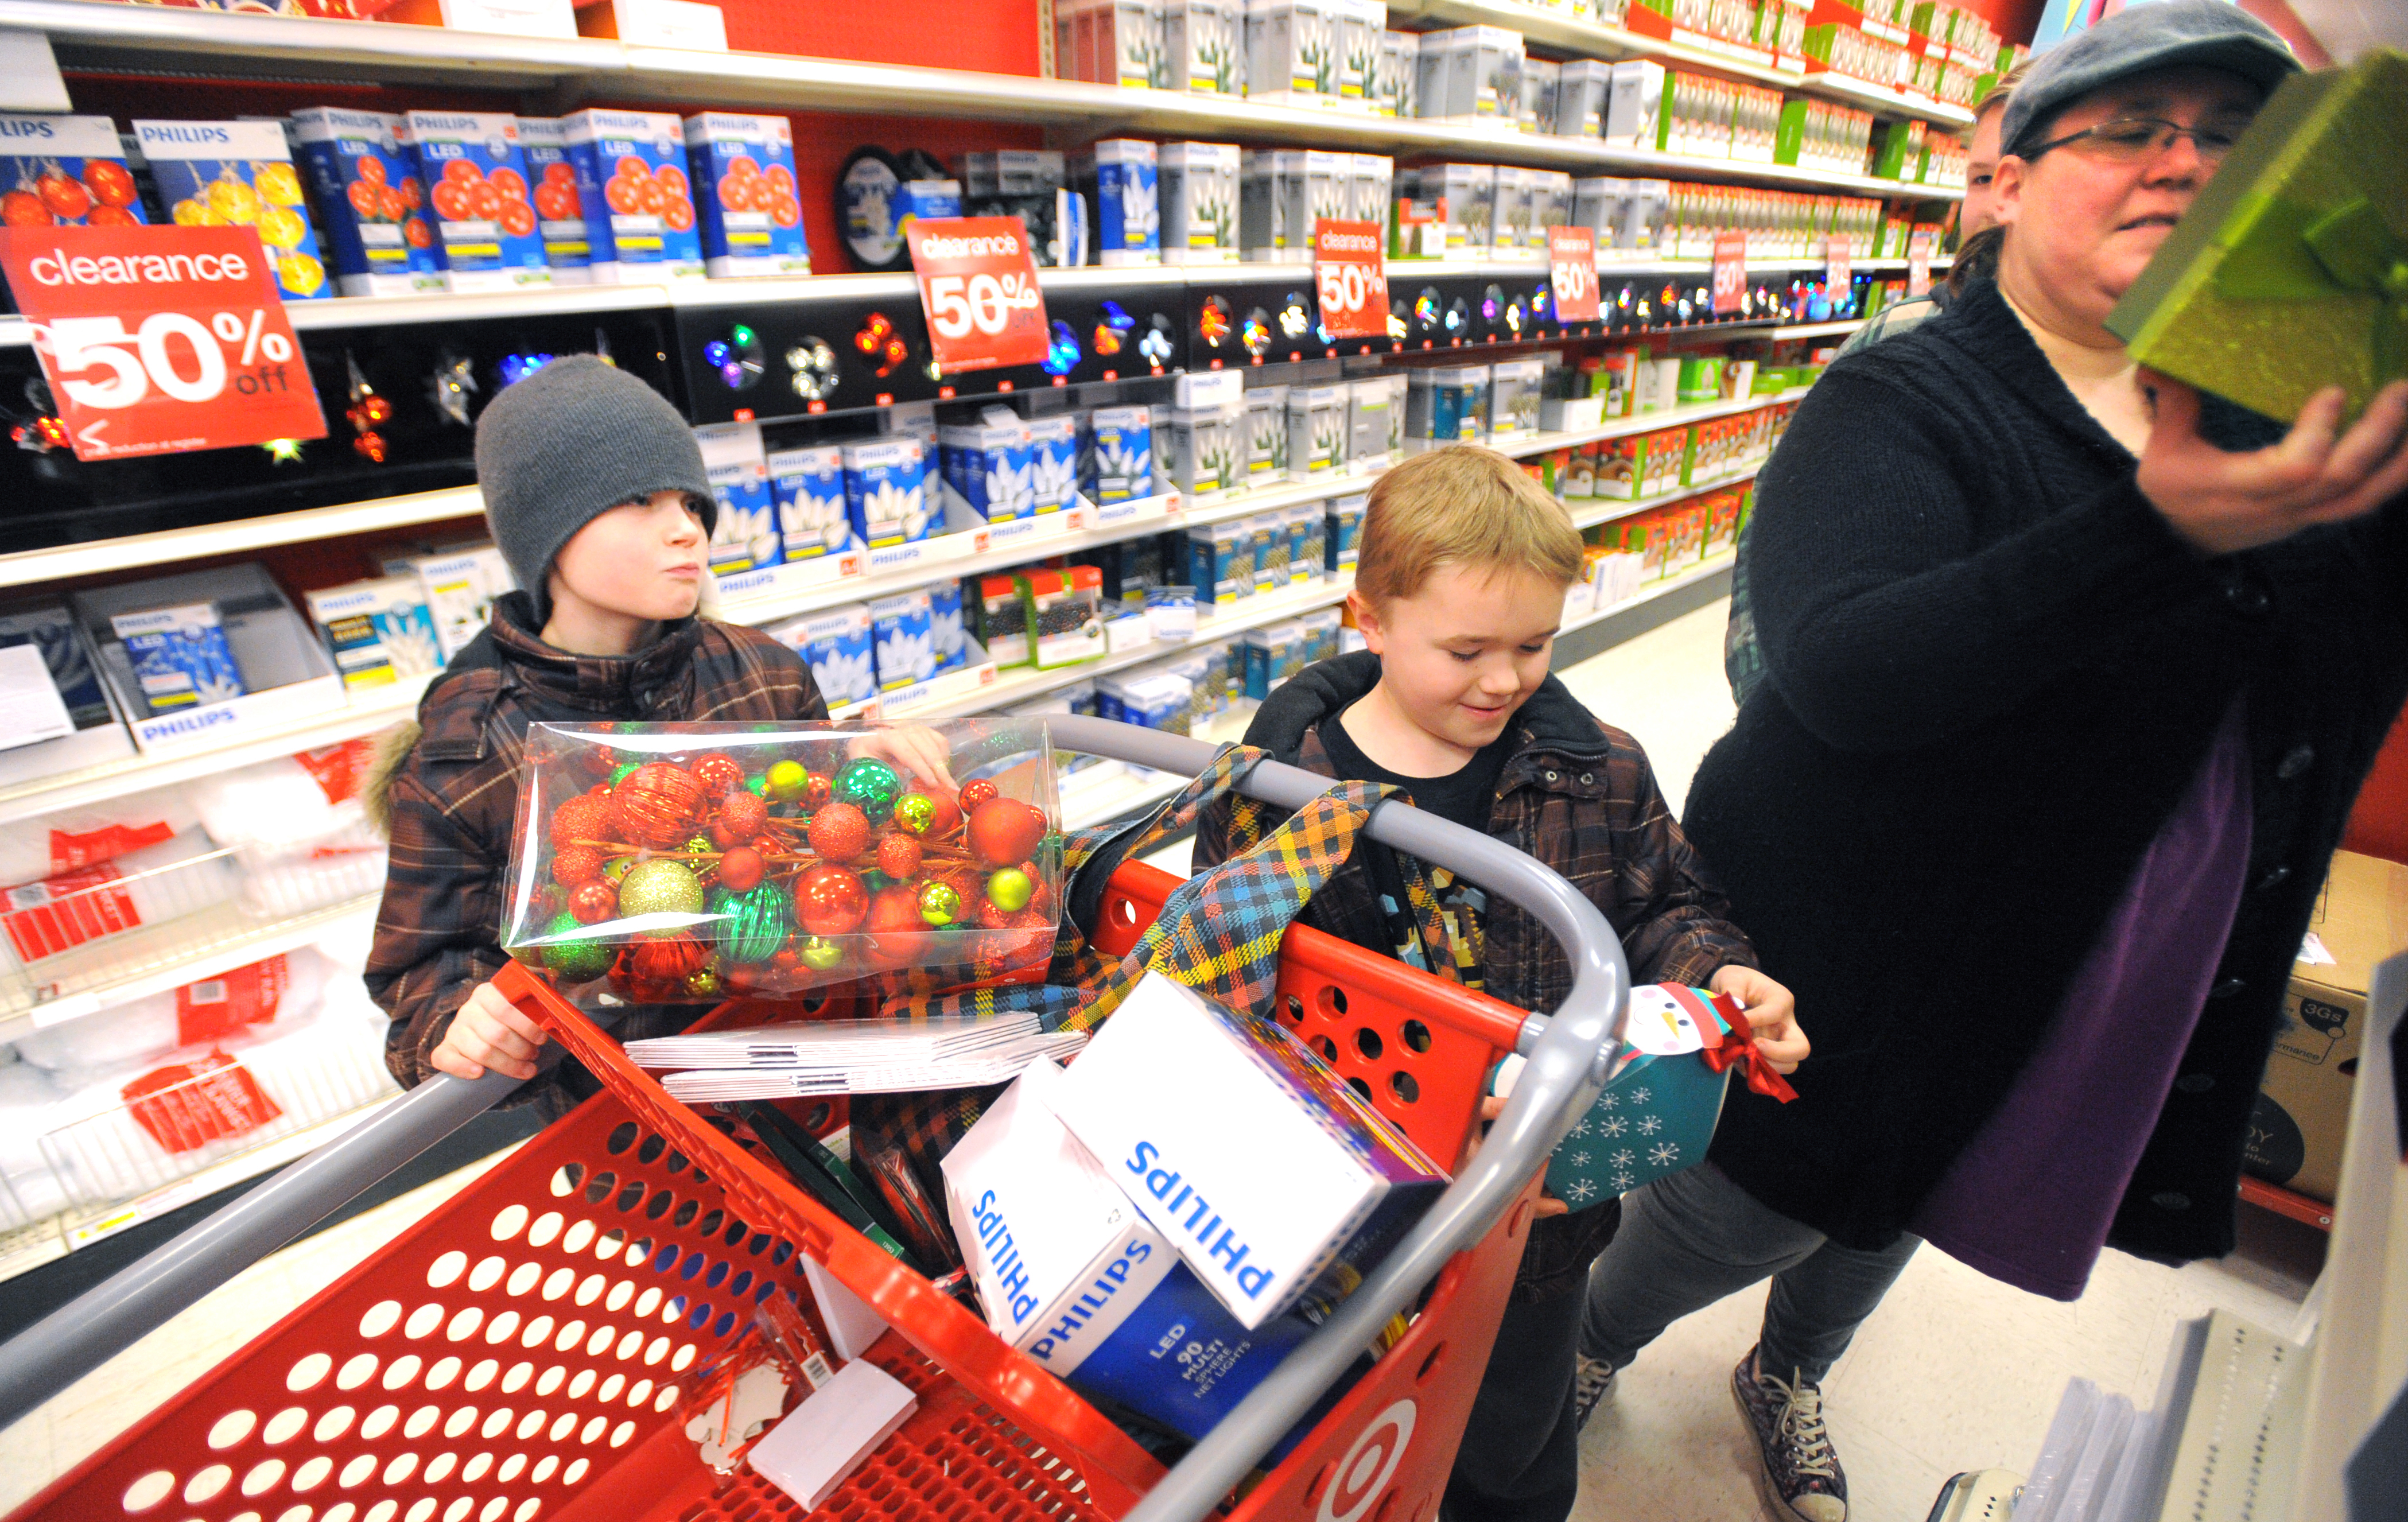 Andrea Harris of Jackson (right) shops for holiday decorations with her sons, Malachi Harris, 9, (left) Abishai Harris, 8, (center) and Eli Crandall, 14, (obscured), at Target in Bangor on Wednesday afternoon. &quotI always shop after these things go on sale to have decorations for next year,&quot she said. Her boys also get some money for Christmas that they can spend after the holiday. They mostly bought video game accessories this year. Erica Ireland, the leader on duty at Target, said the store was very busy on Wednesday